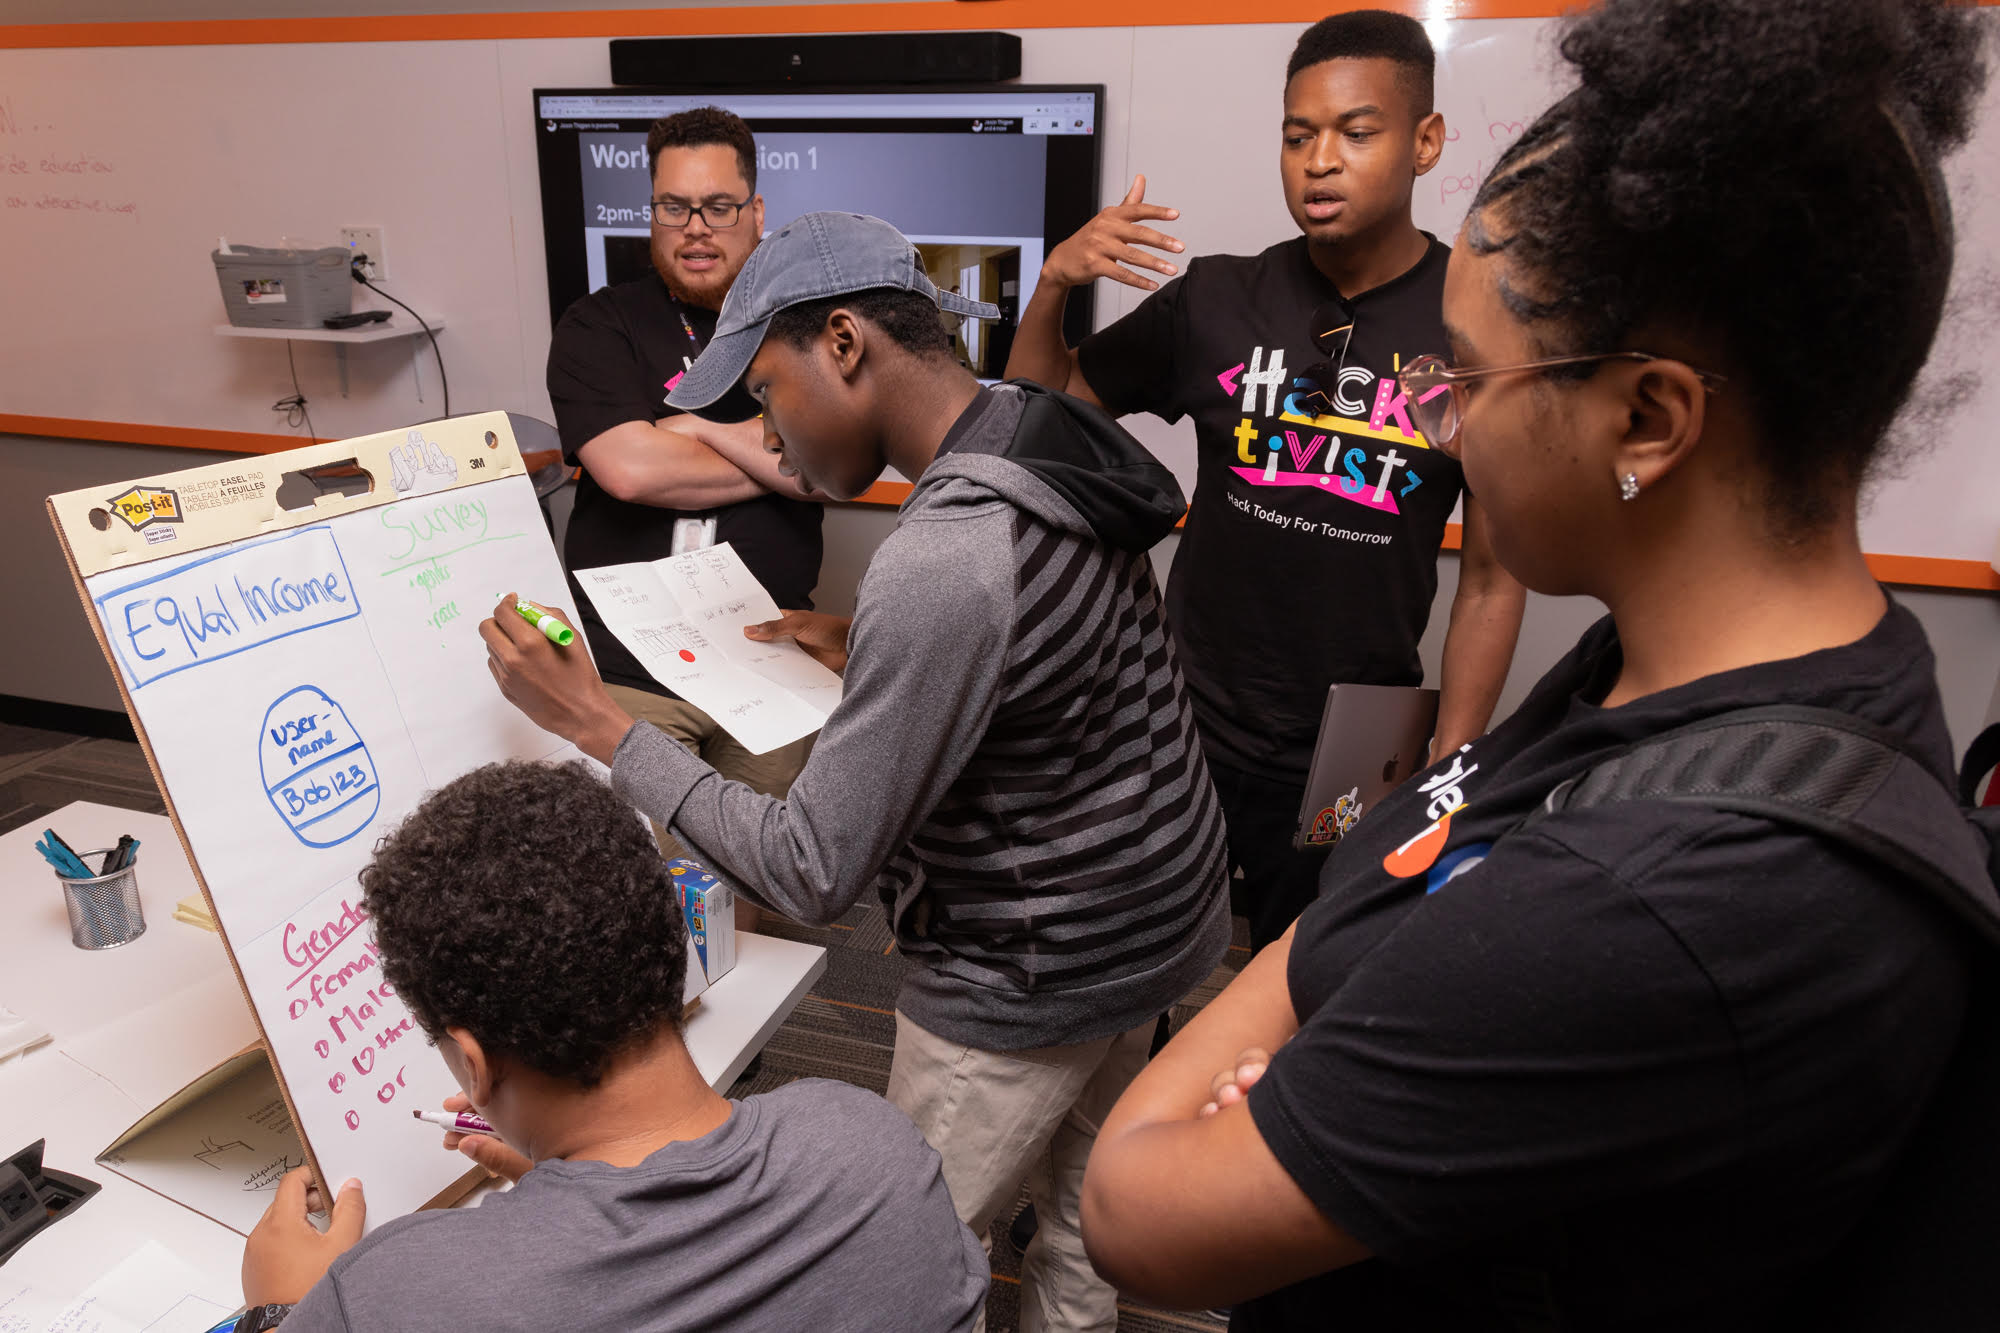 Code Next students merge computer science and activism